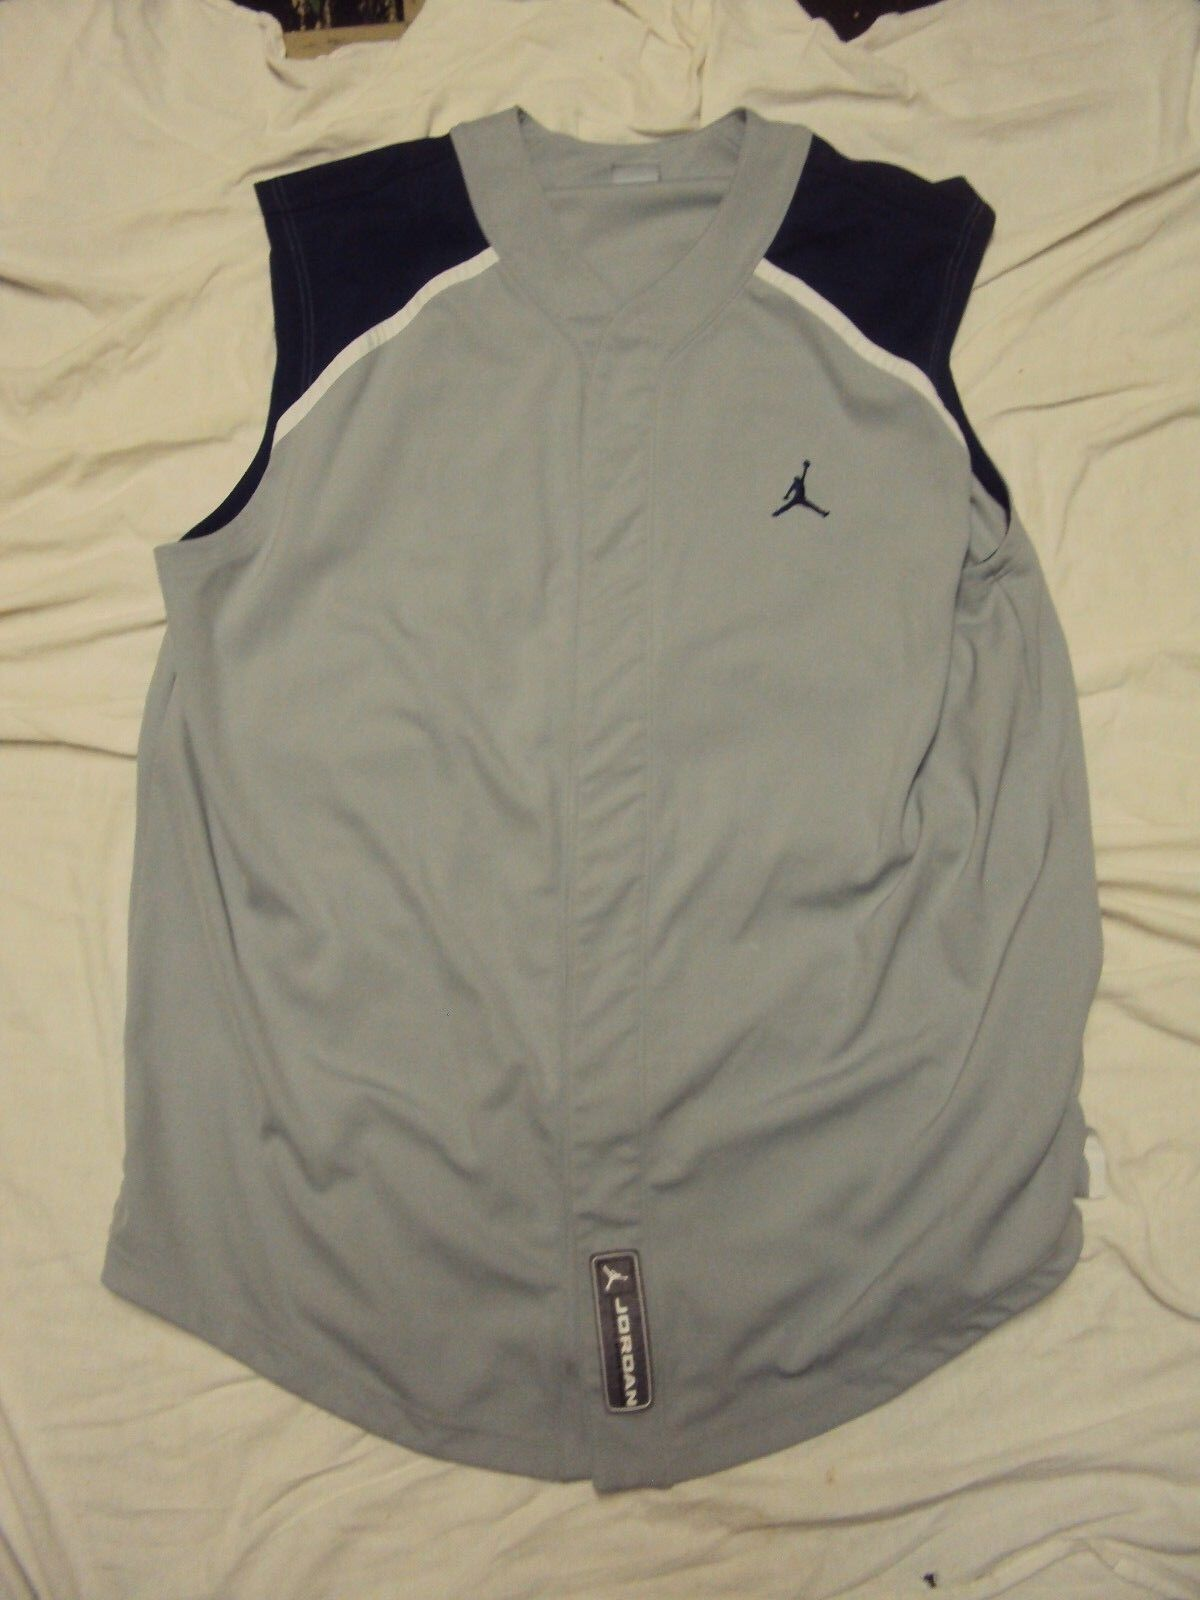 Air Jordan Baseball Vest Adult Size 2XL New Without Tags